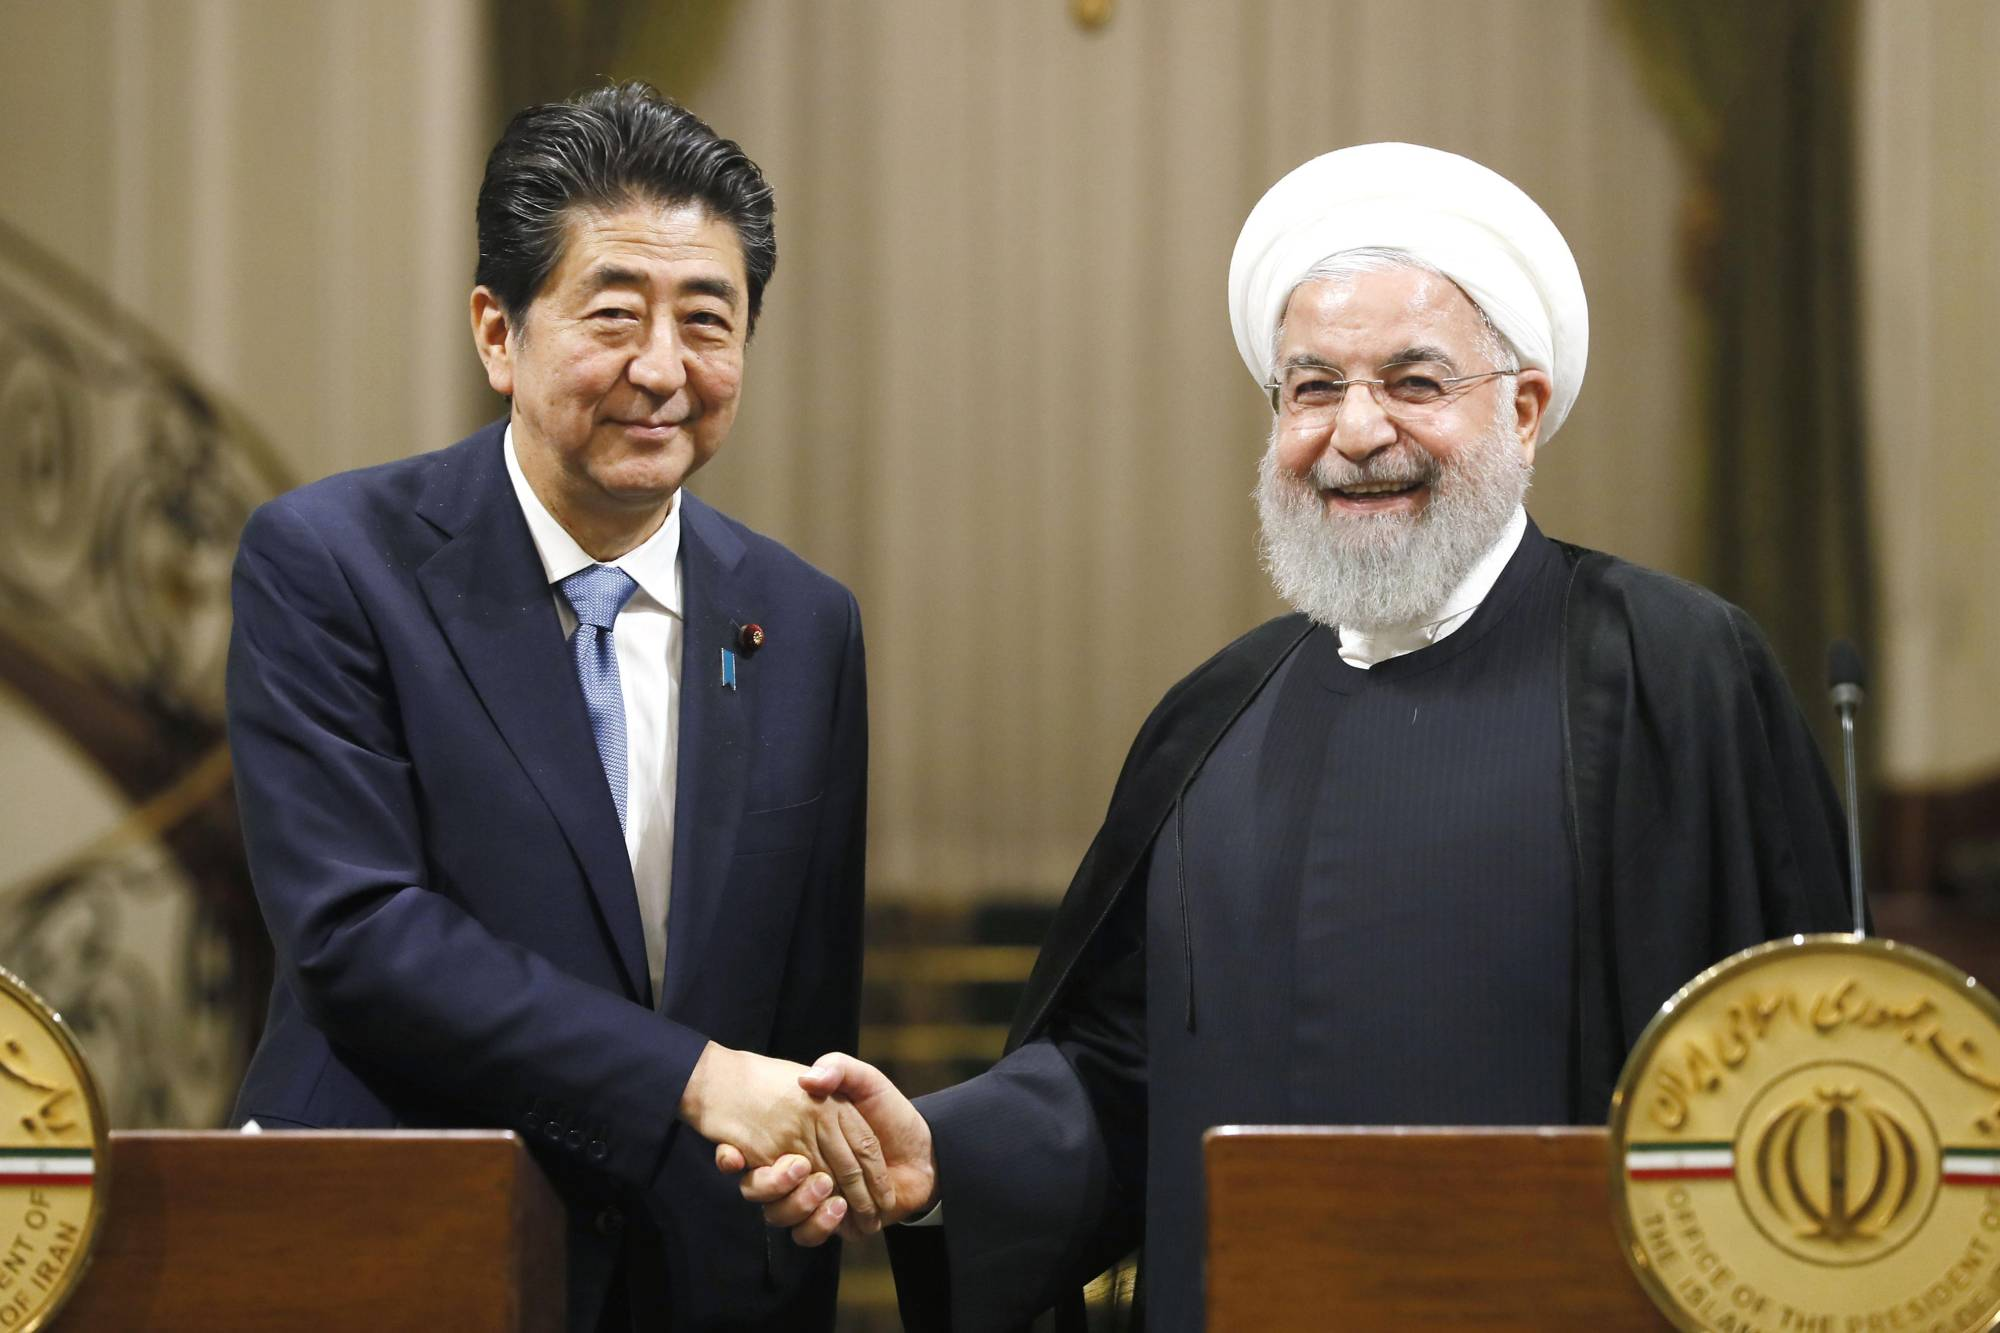 Prime Minister Shinzo Abe and Iranian President Hassan Rouhani shake hands after a joint press conference in Tehran on June 12. | KYODO